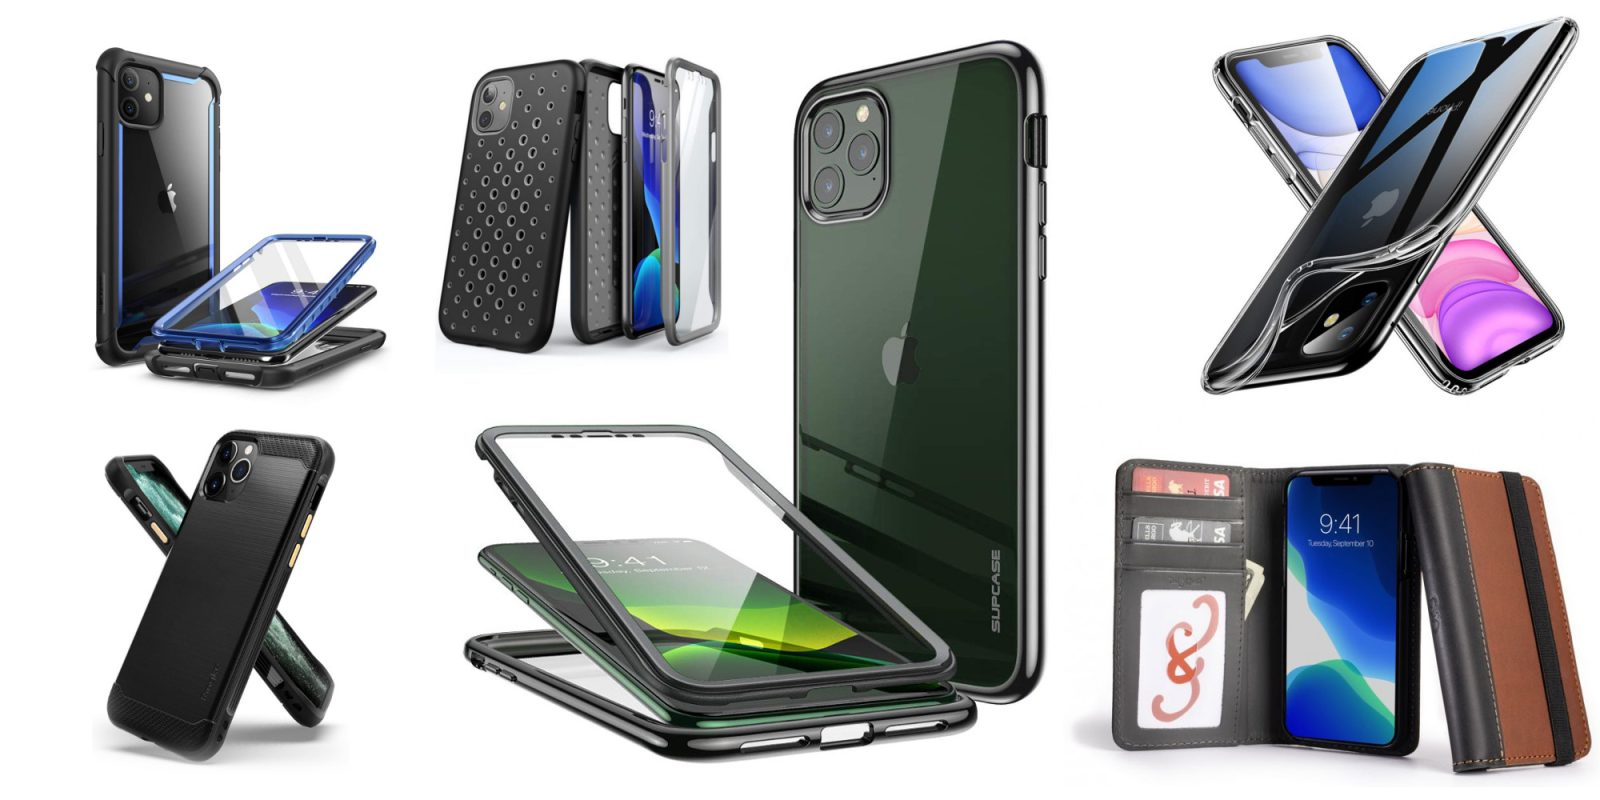 Best iPhone 11/Pro/Max case deals available right now, starting from $3